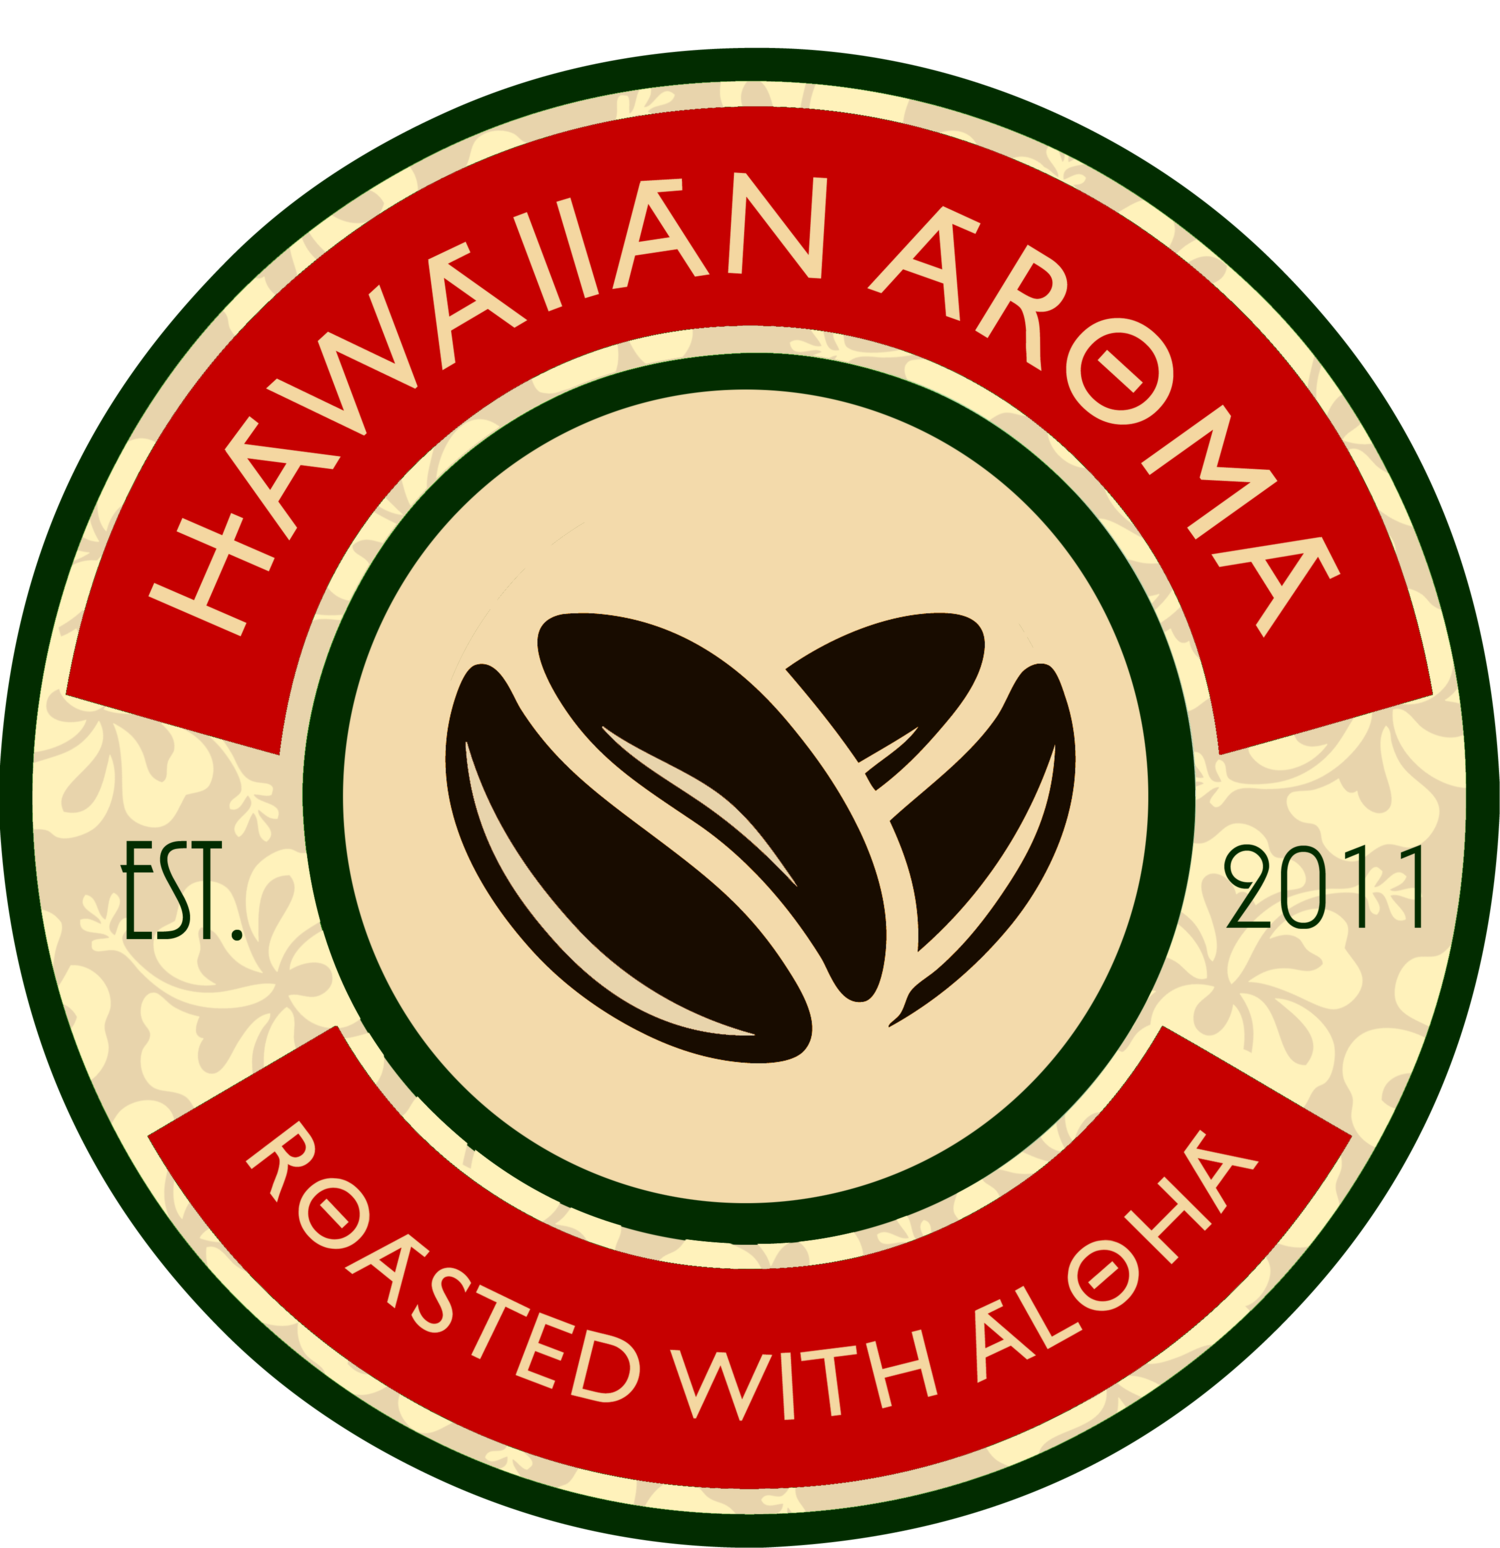 Hawaiian Aroma Caffe | Hawaii's Best Coffee